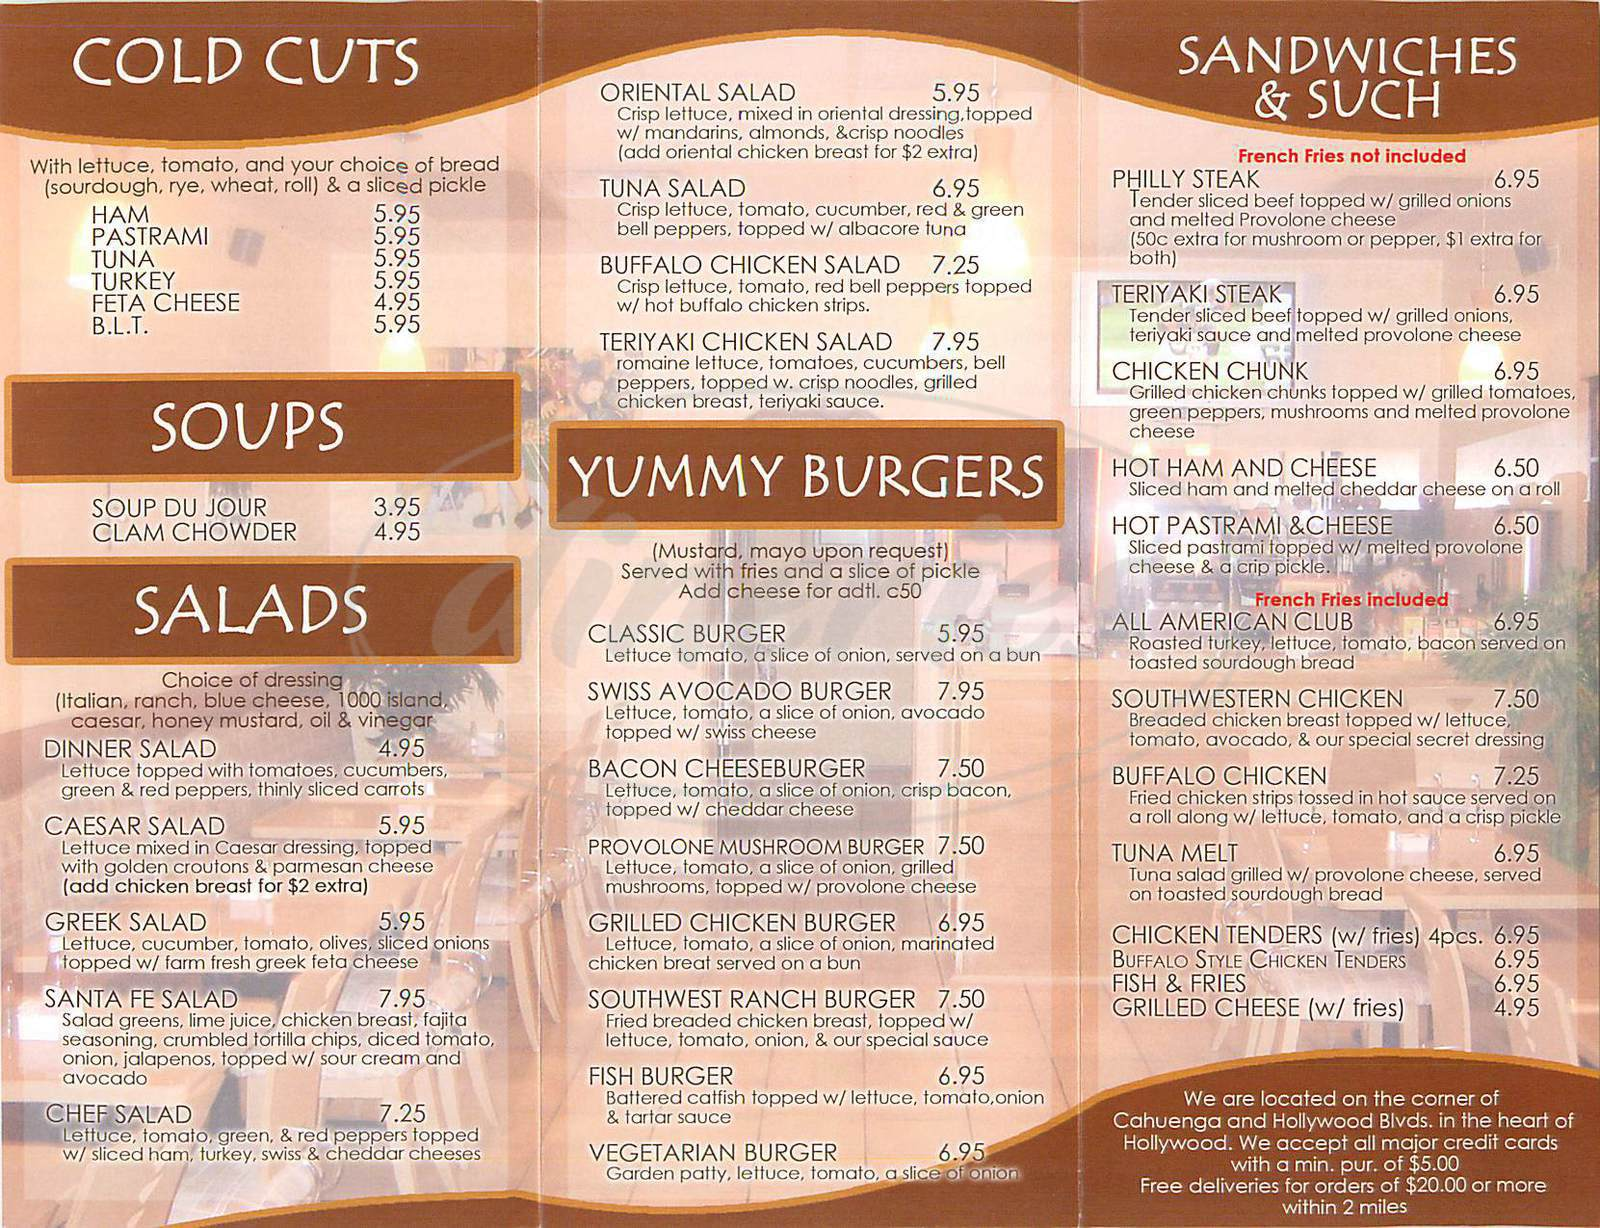 menu for California Wings Café